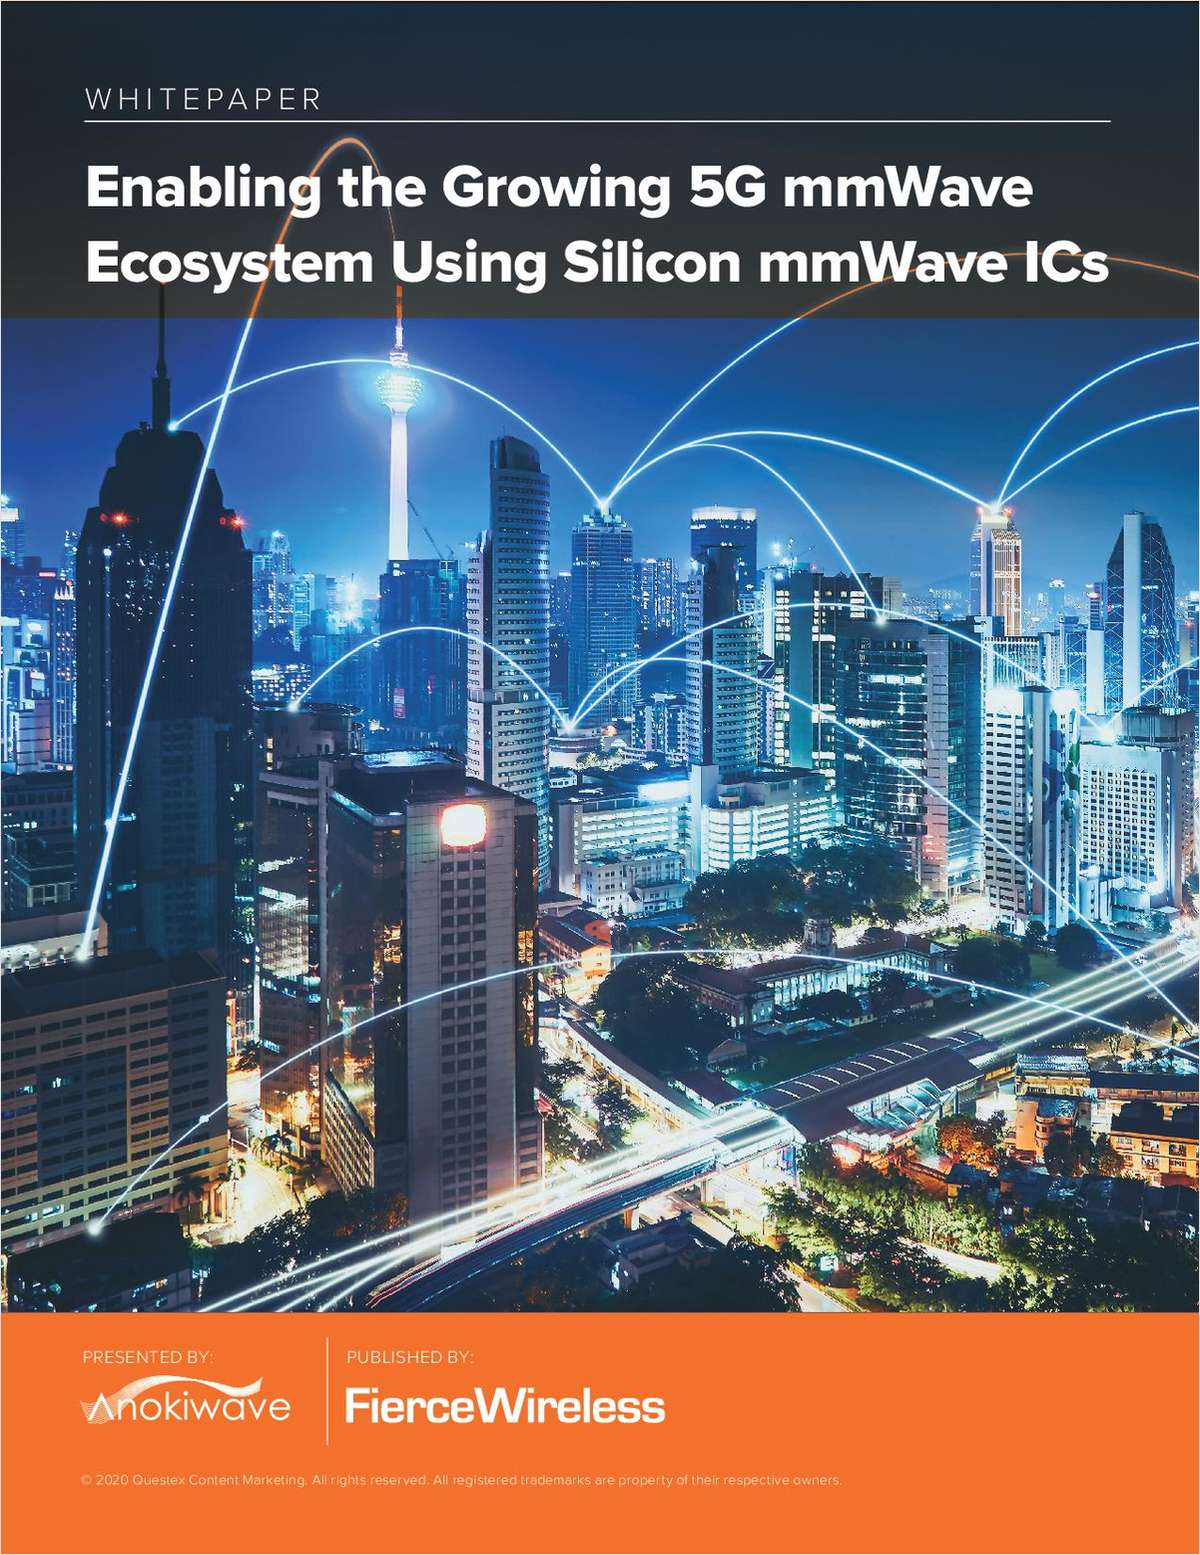 Enabling the Growing 5G mmWave Ecosystem Using Silicon mmWave ICs